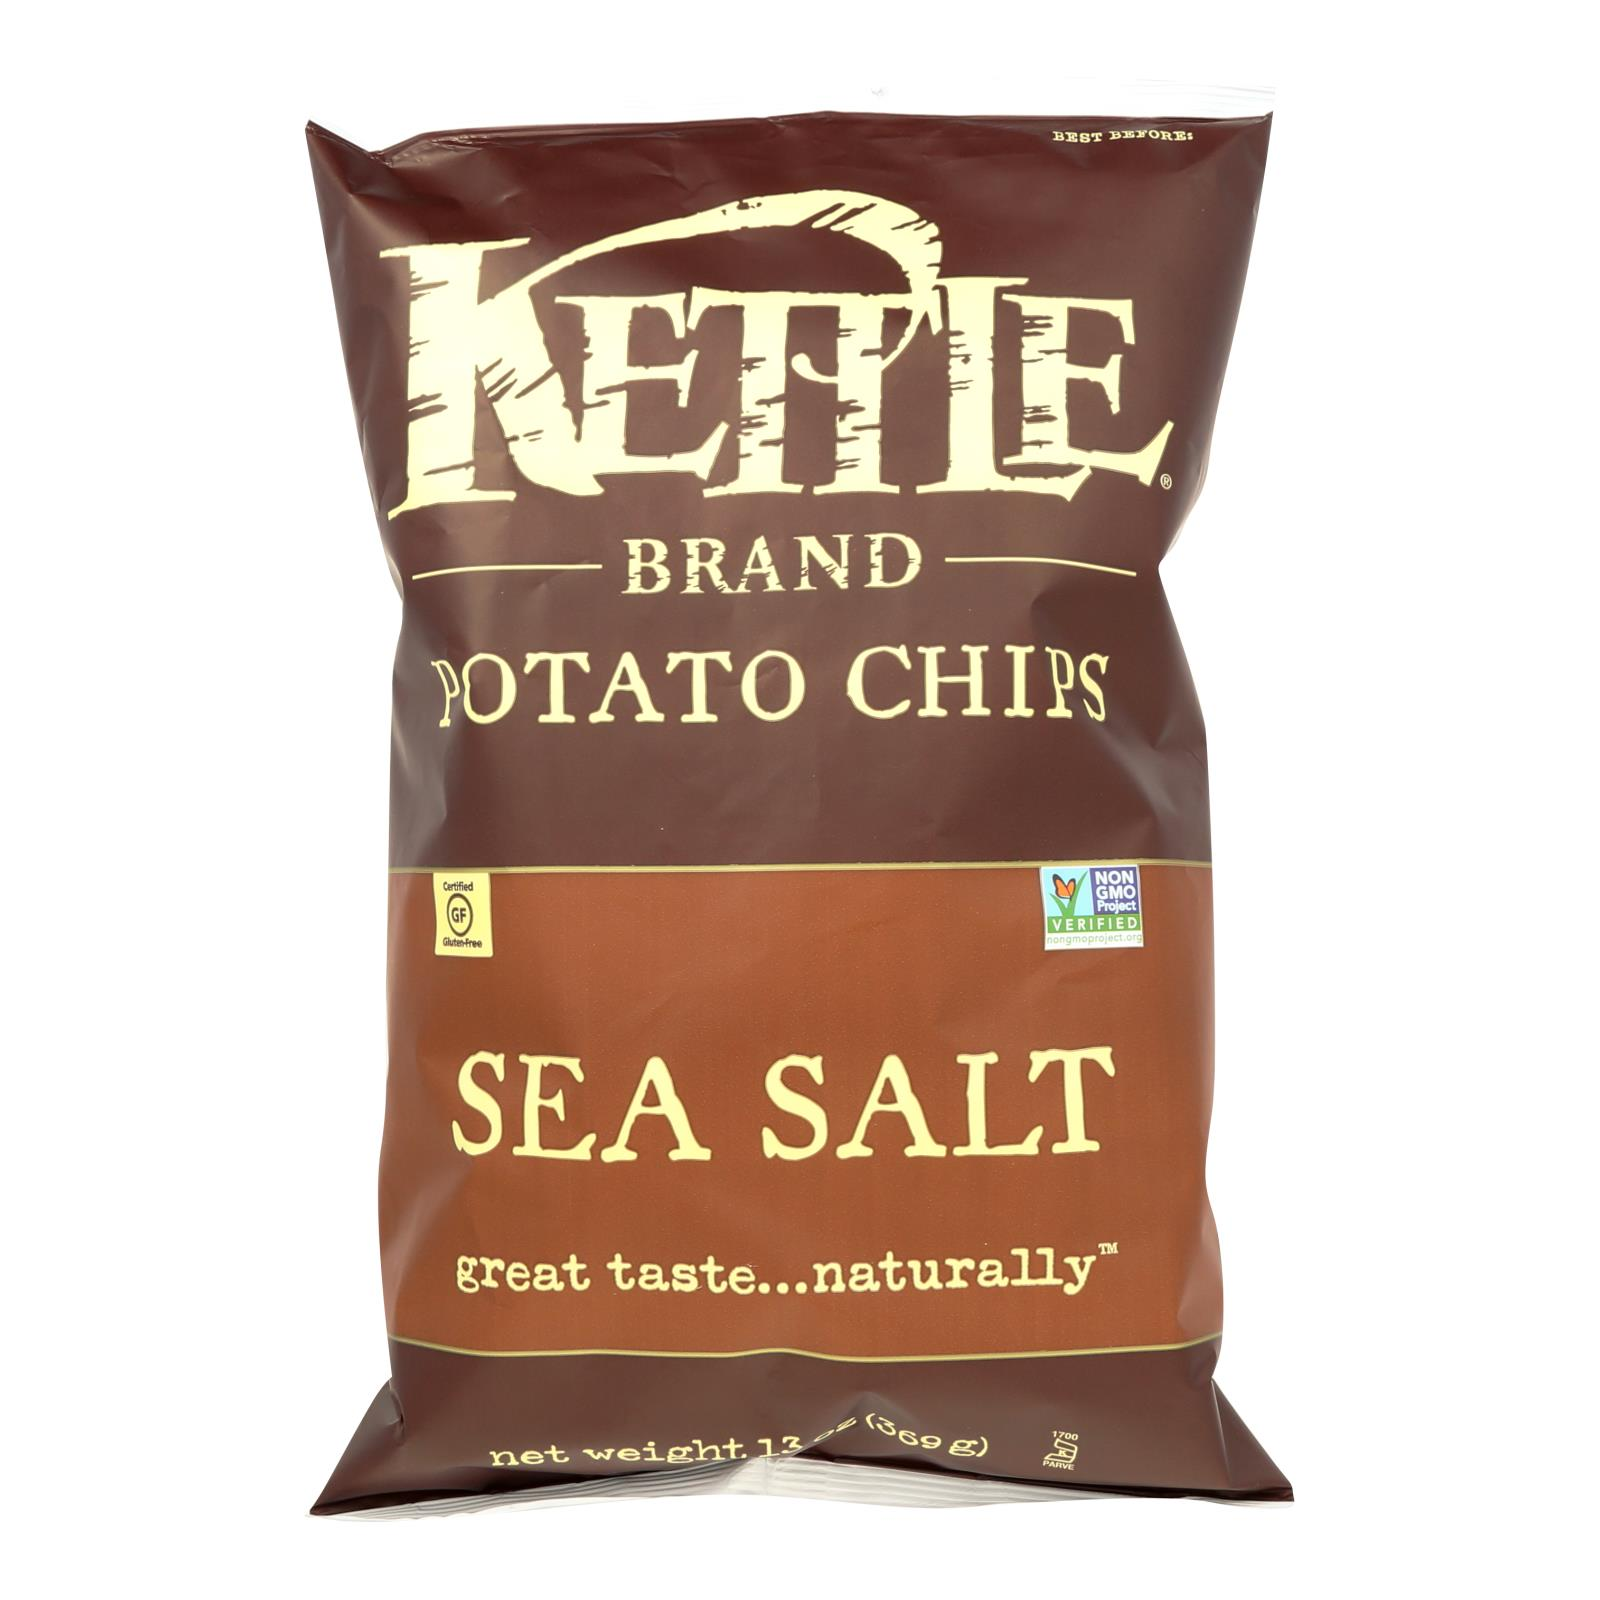 Kettle Potato Chips - Case of 9 - 13 OZ